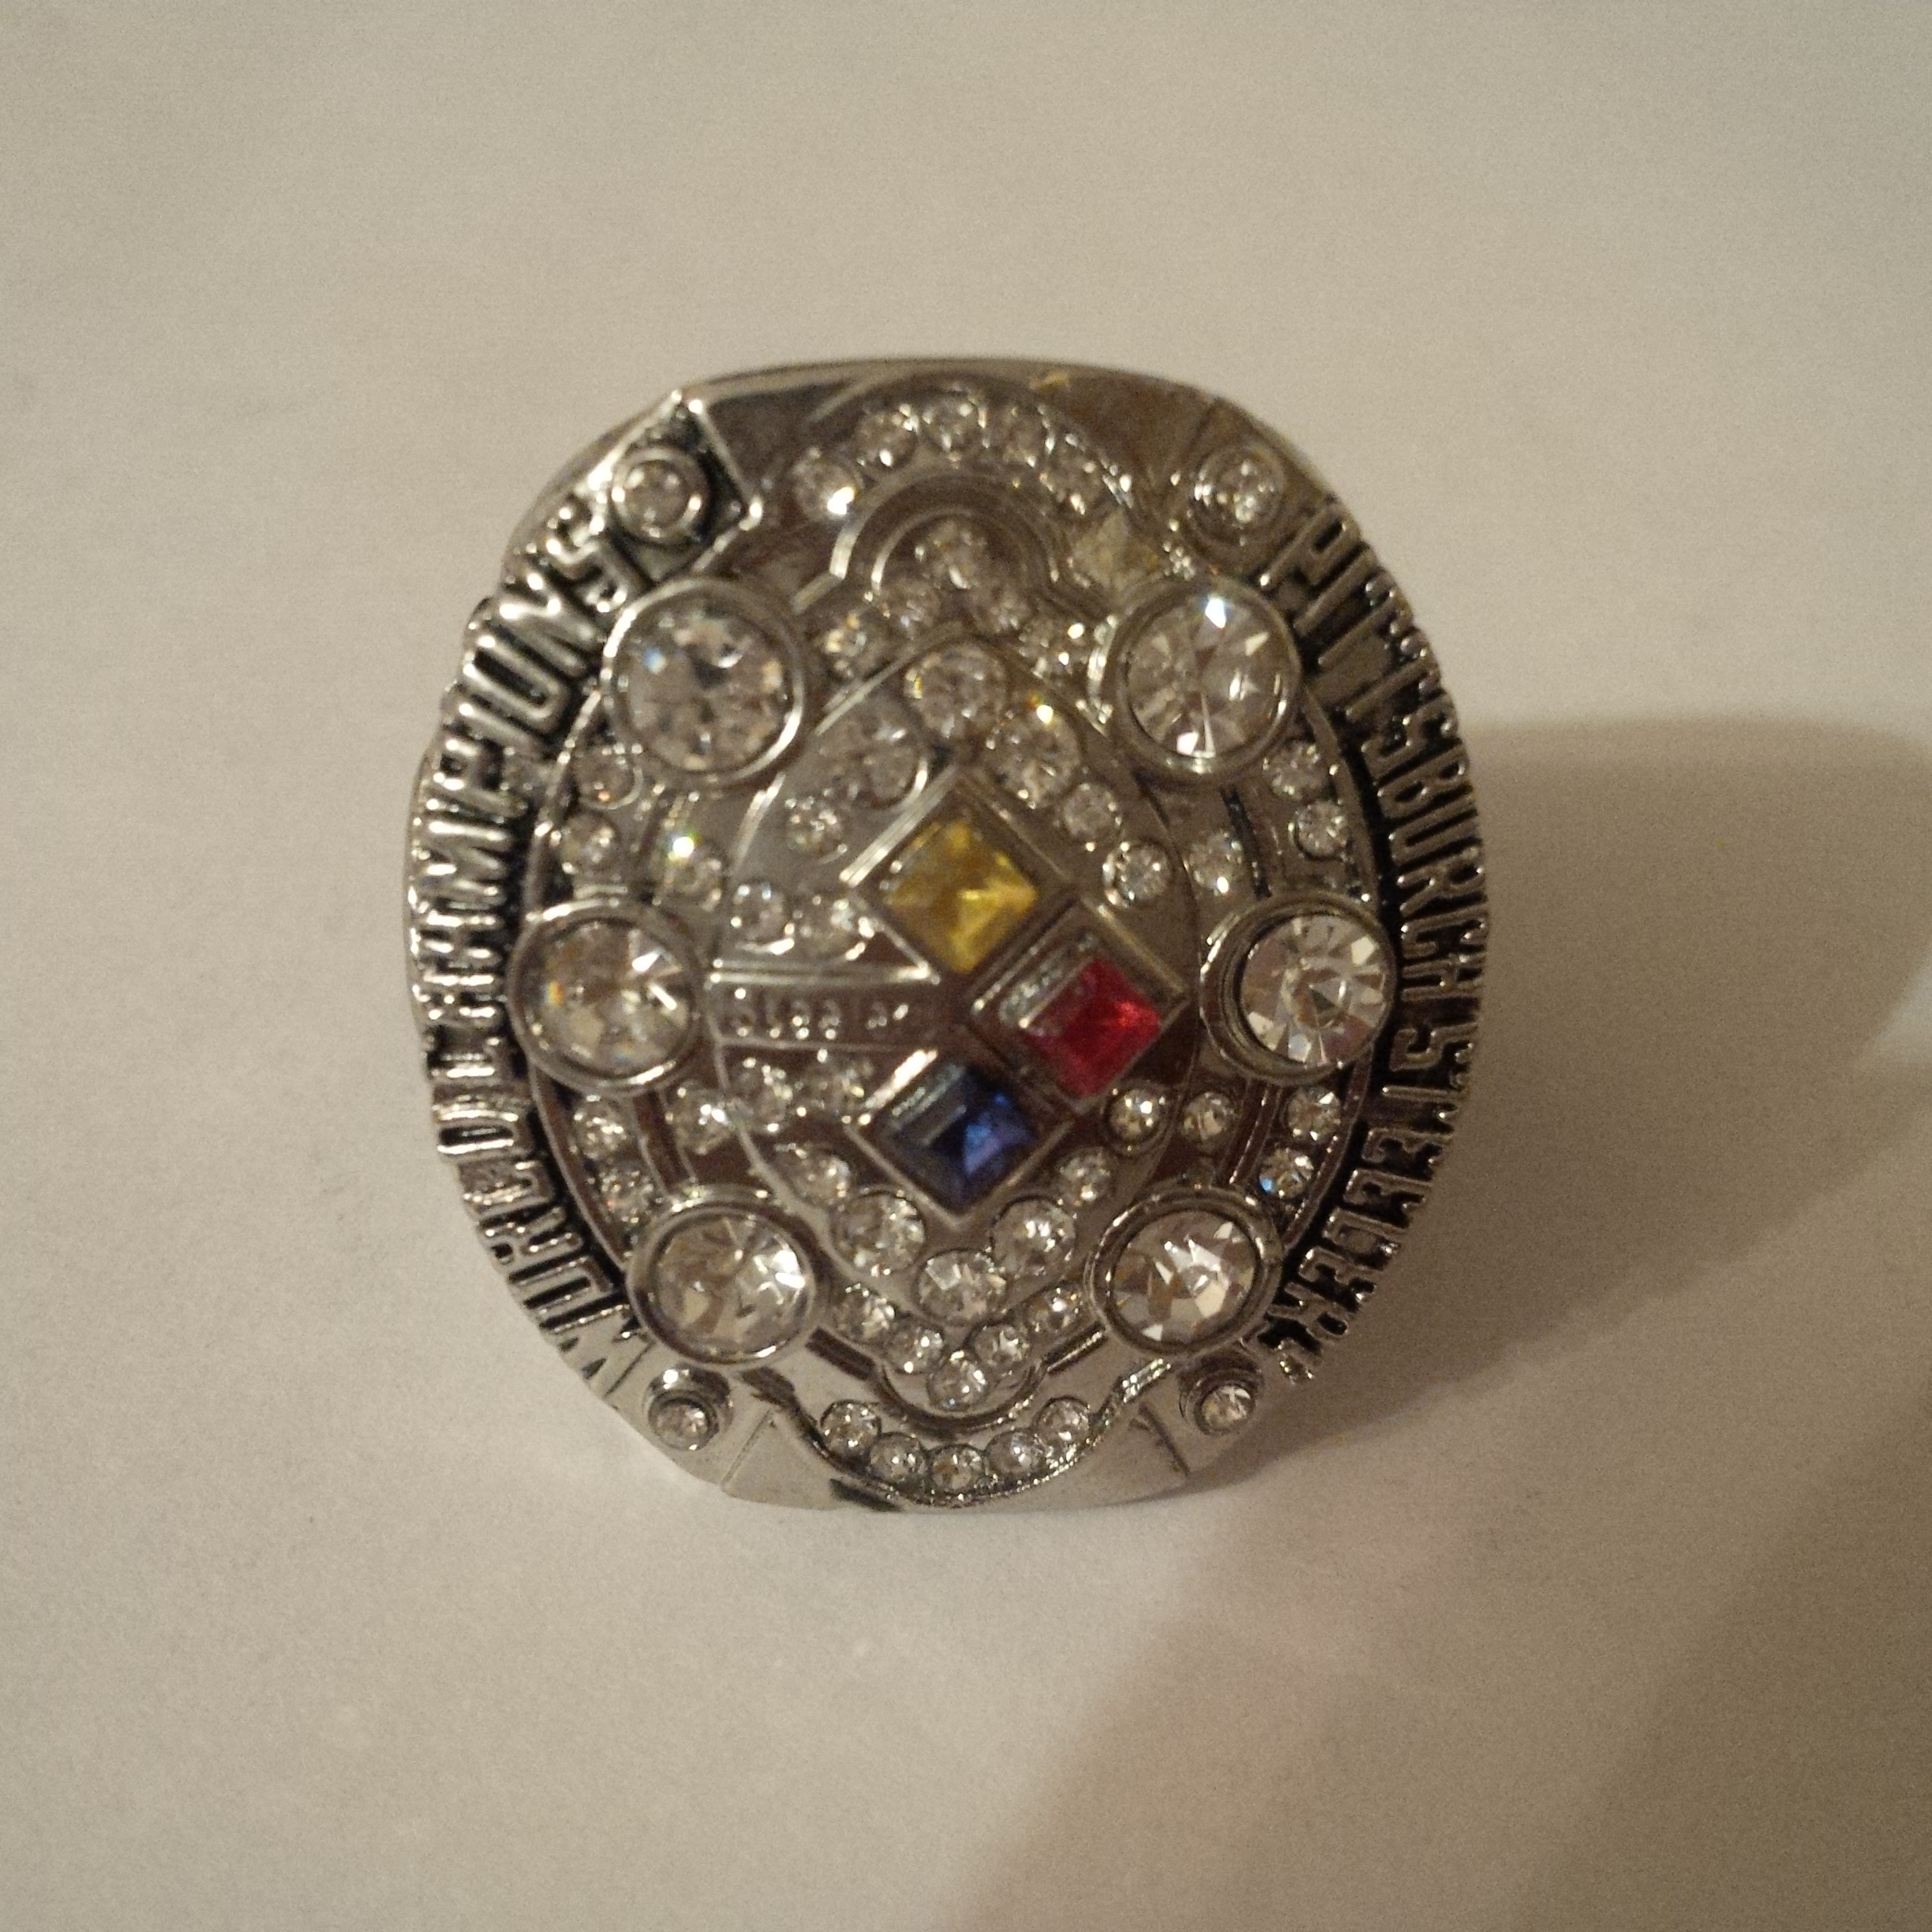 New     Silver Pittsburgh Steelers 2008 Superbowl Ring Re...